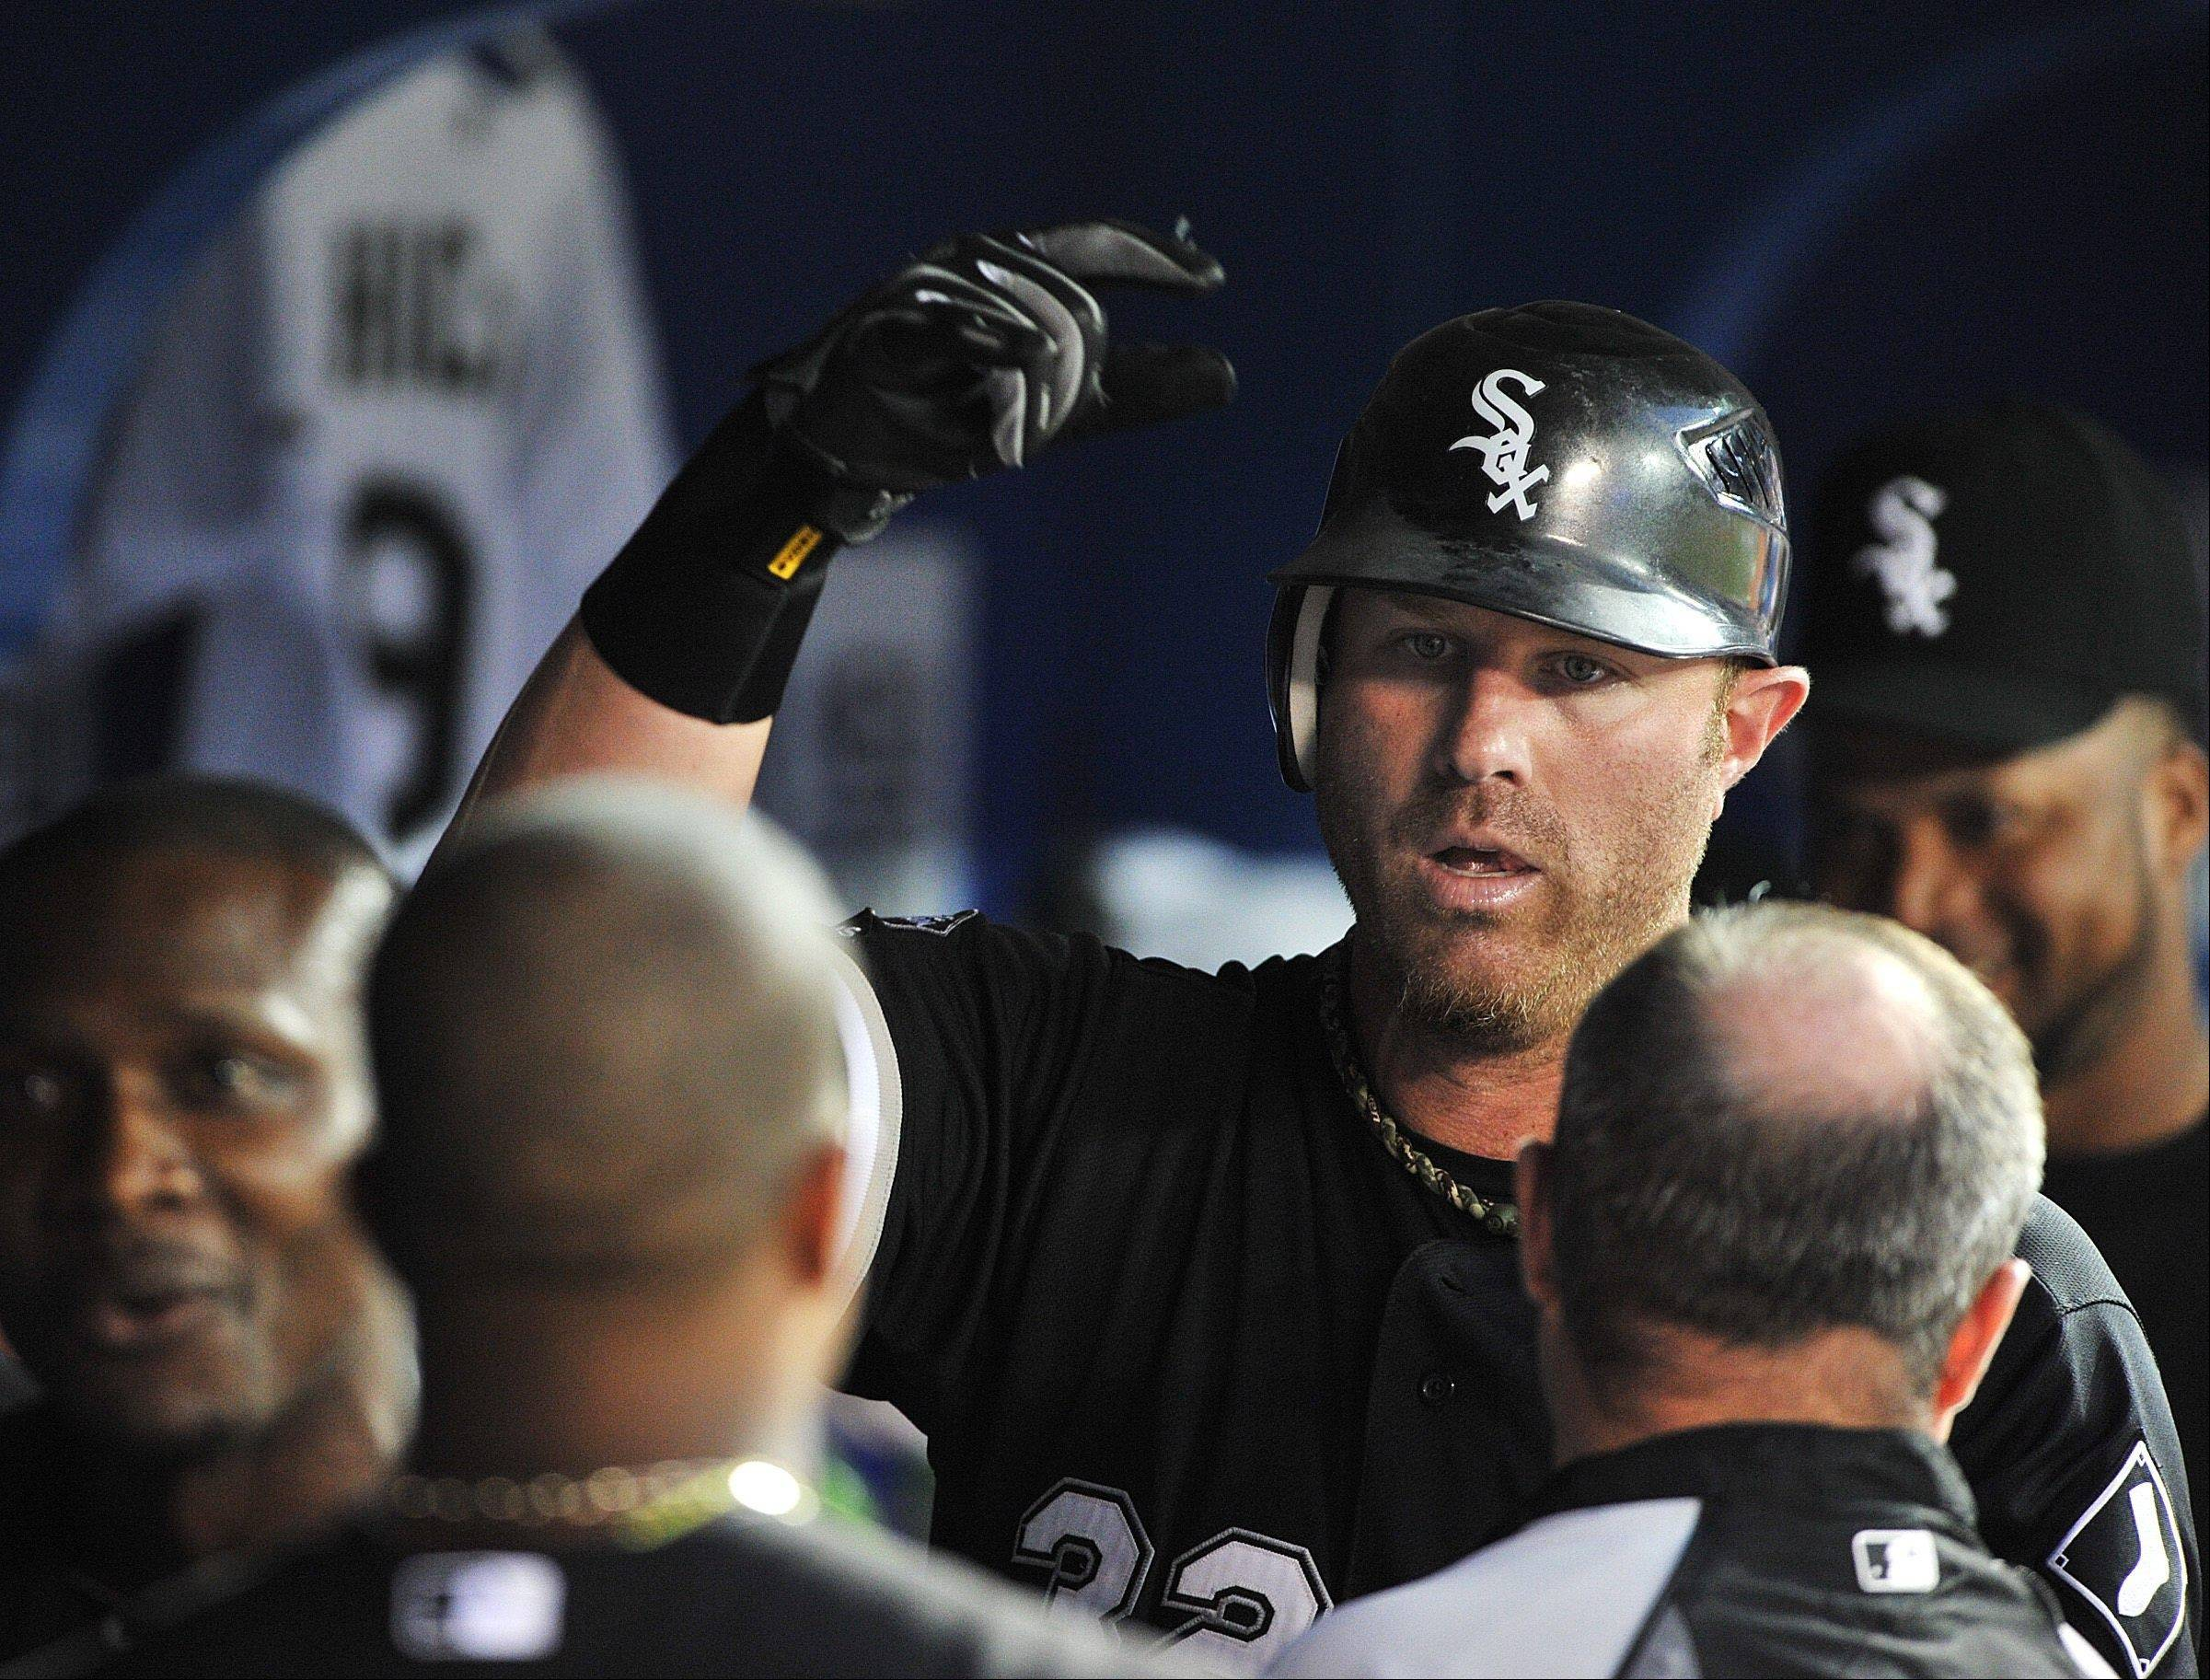 White Sox's Adam Dunn celebrates a home run against the Toronto Blue Jays during the fourth inning of a baseball game Monday in Toronto.